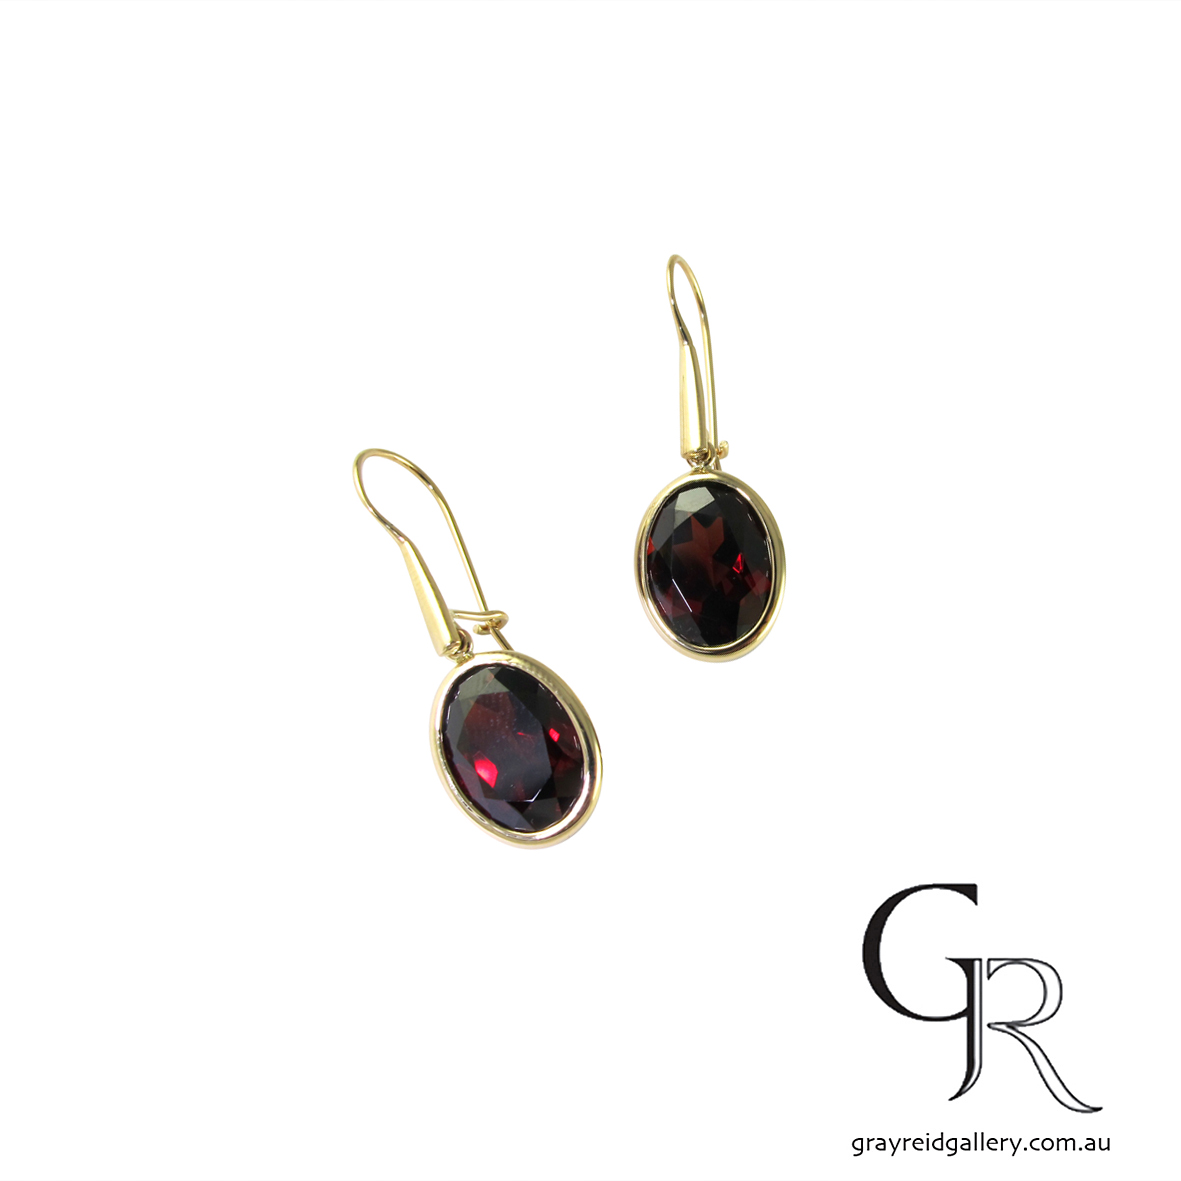 Faceted Garnet earrings in Yellow Gold